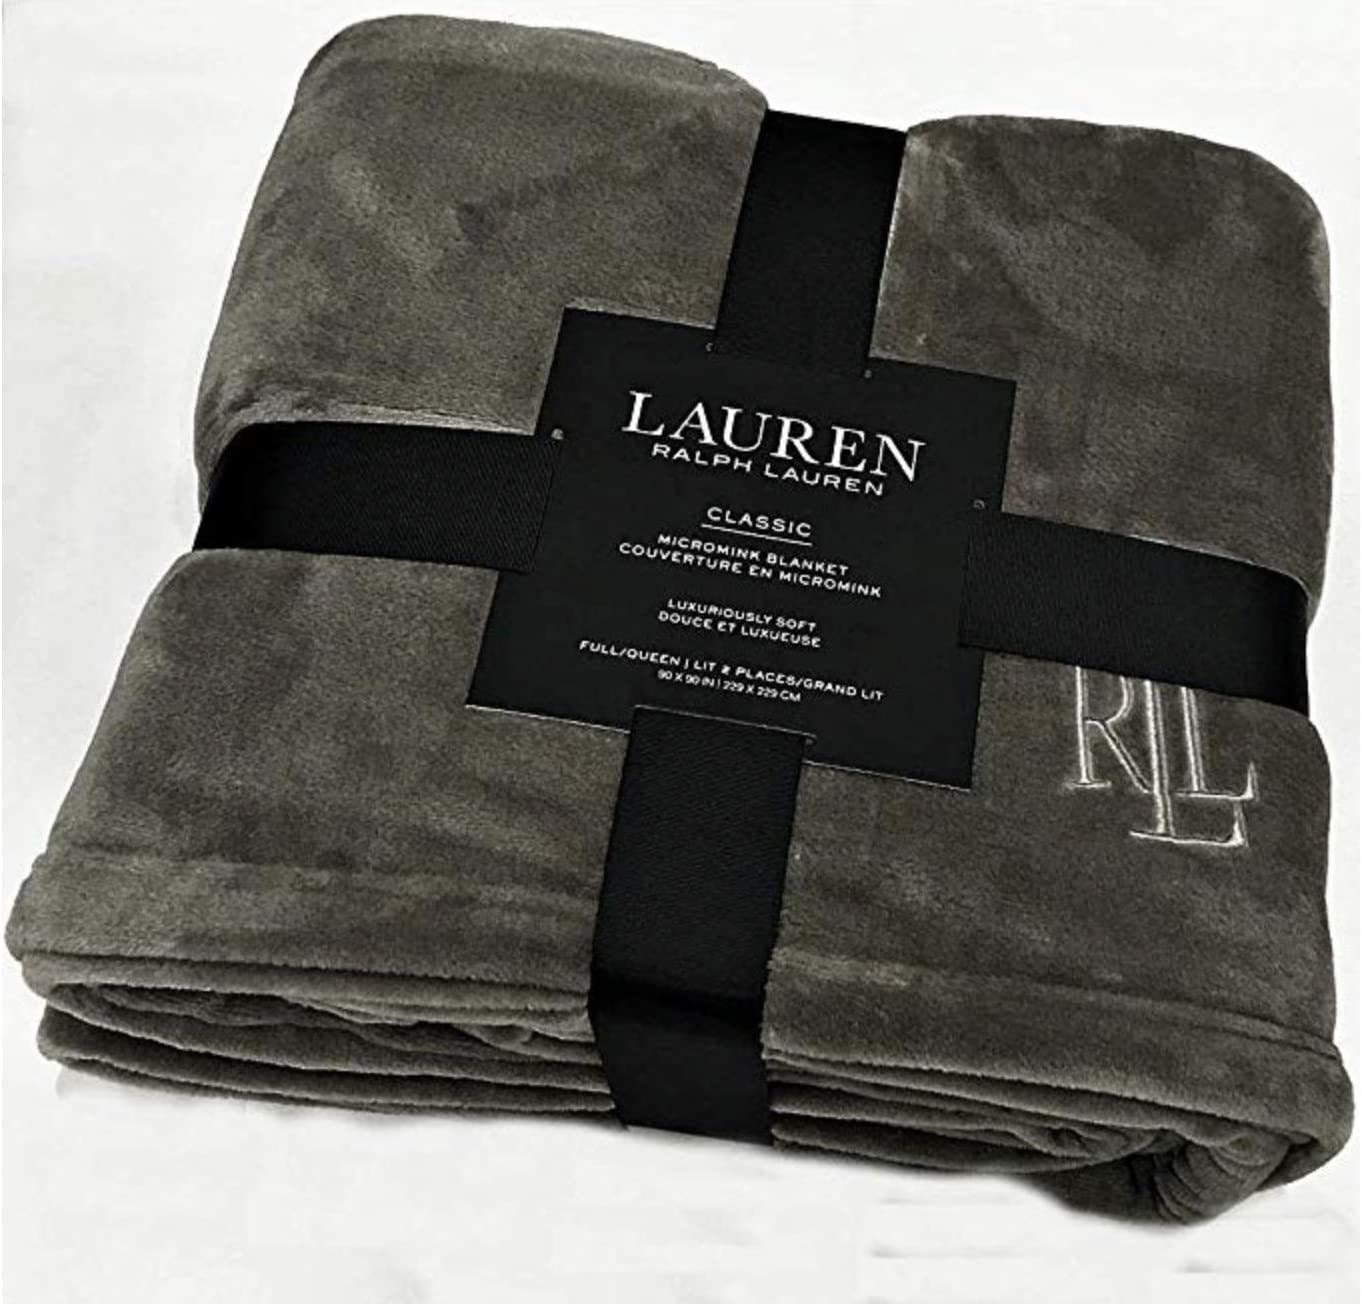 "Ralph Lauren Classic Charcoal Gray Micromink Plush All Season Blanket | Full/Queen 90"" x 90"" 